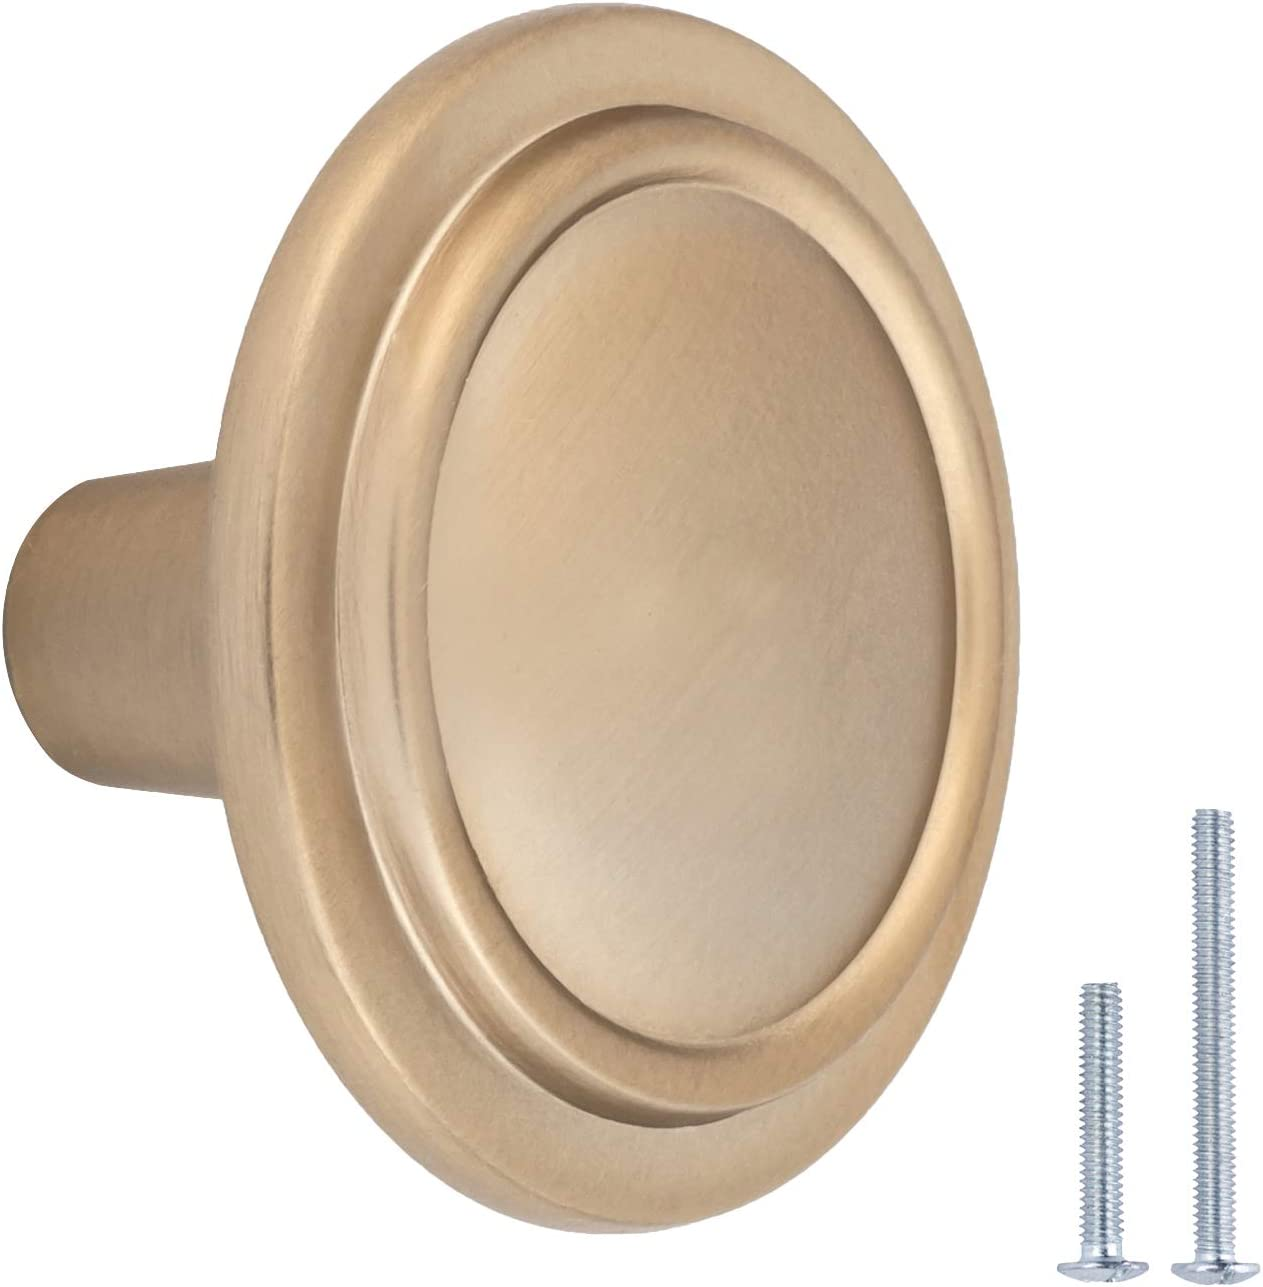 AmazonBasics Straight Top Ring Cabinet Knob, 1.25-inch Diameter, Golden Champagne, 25-pack